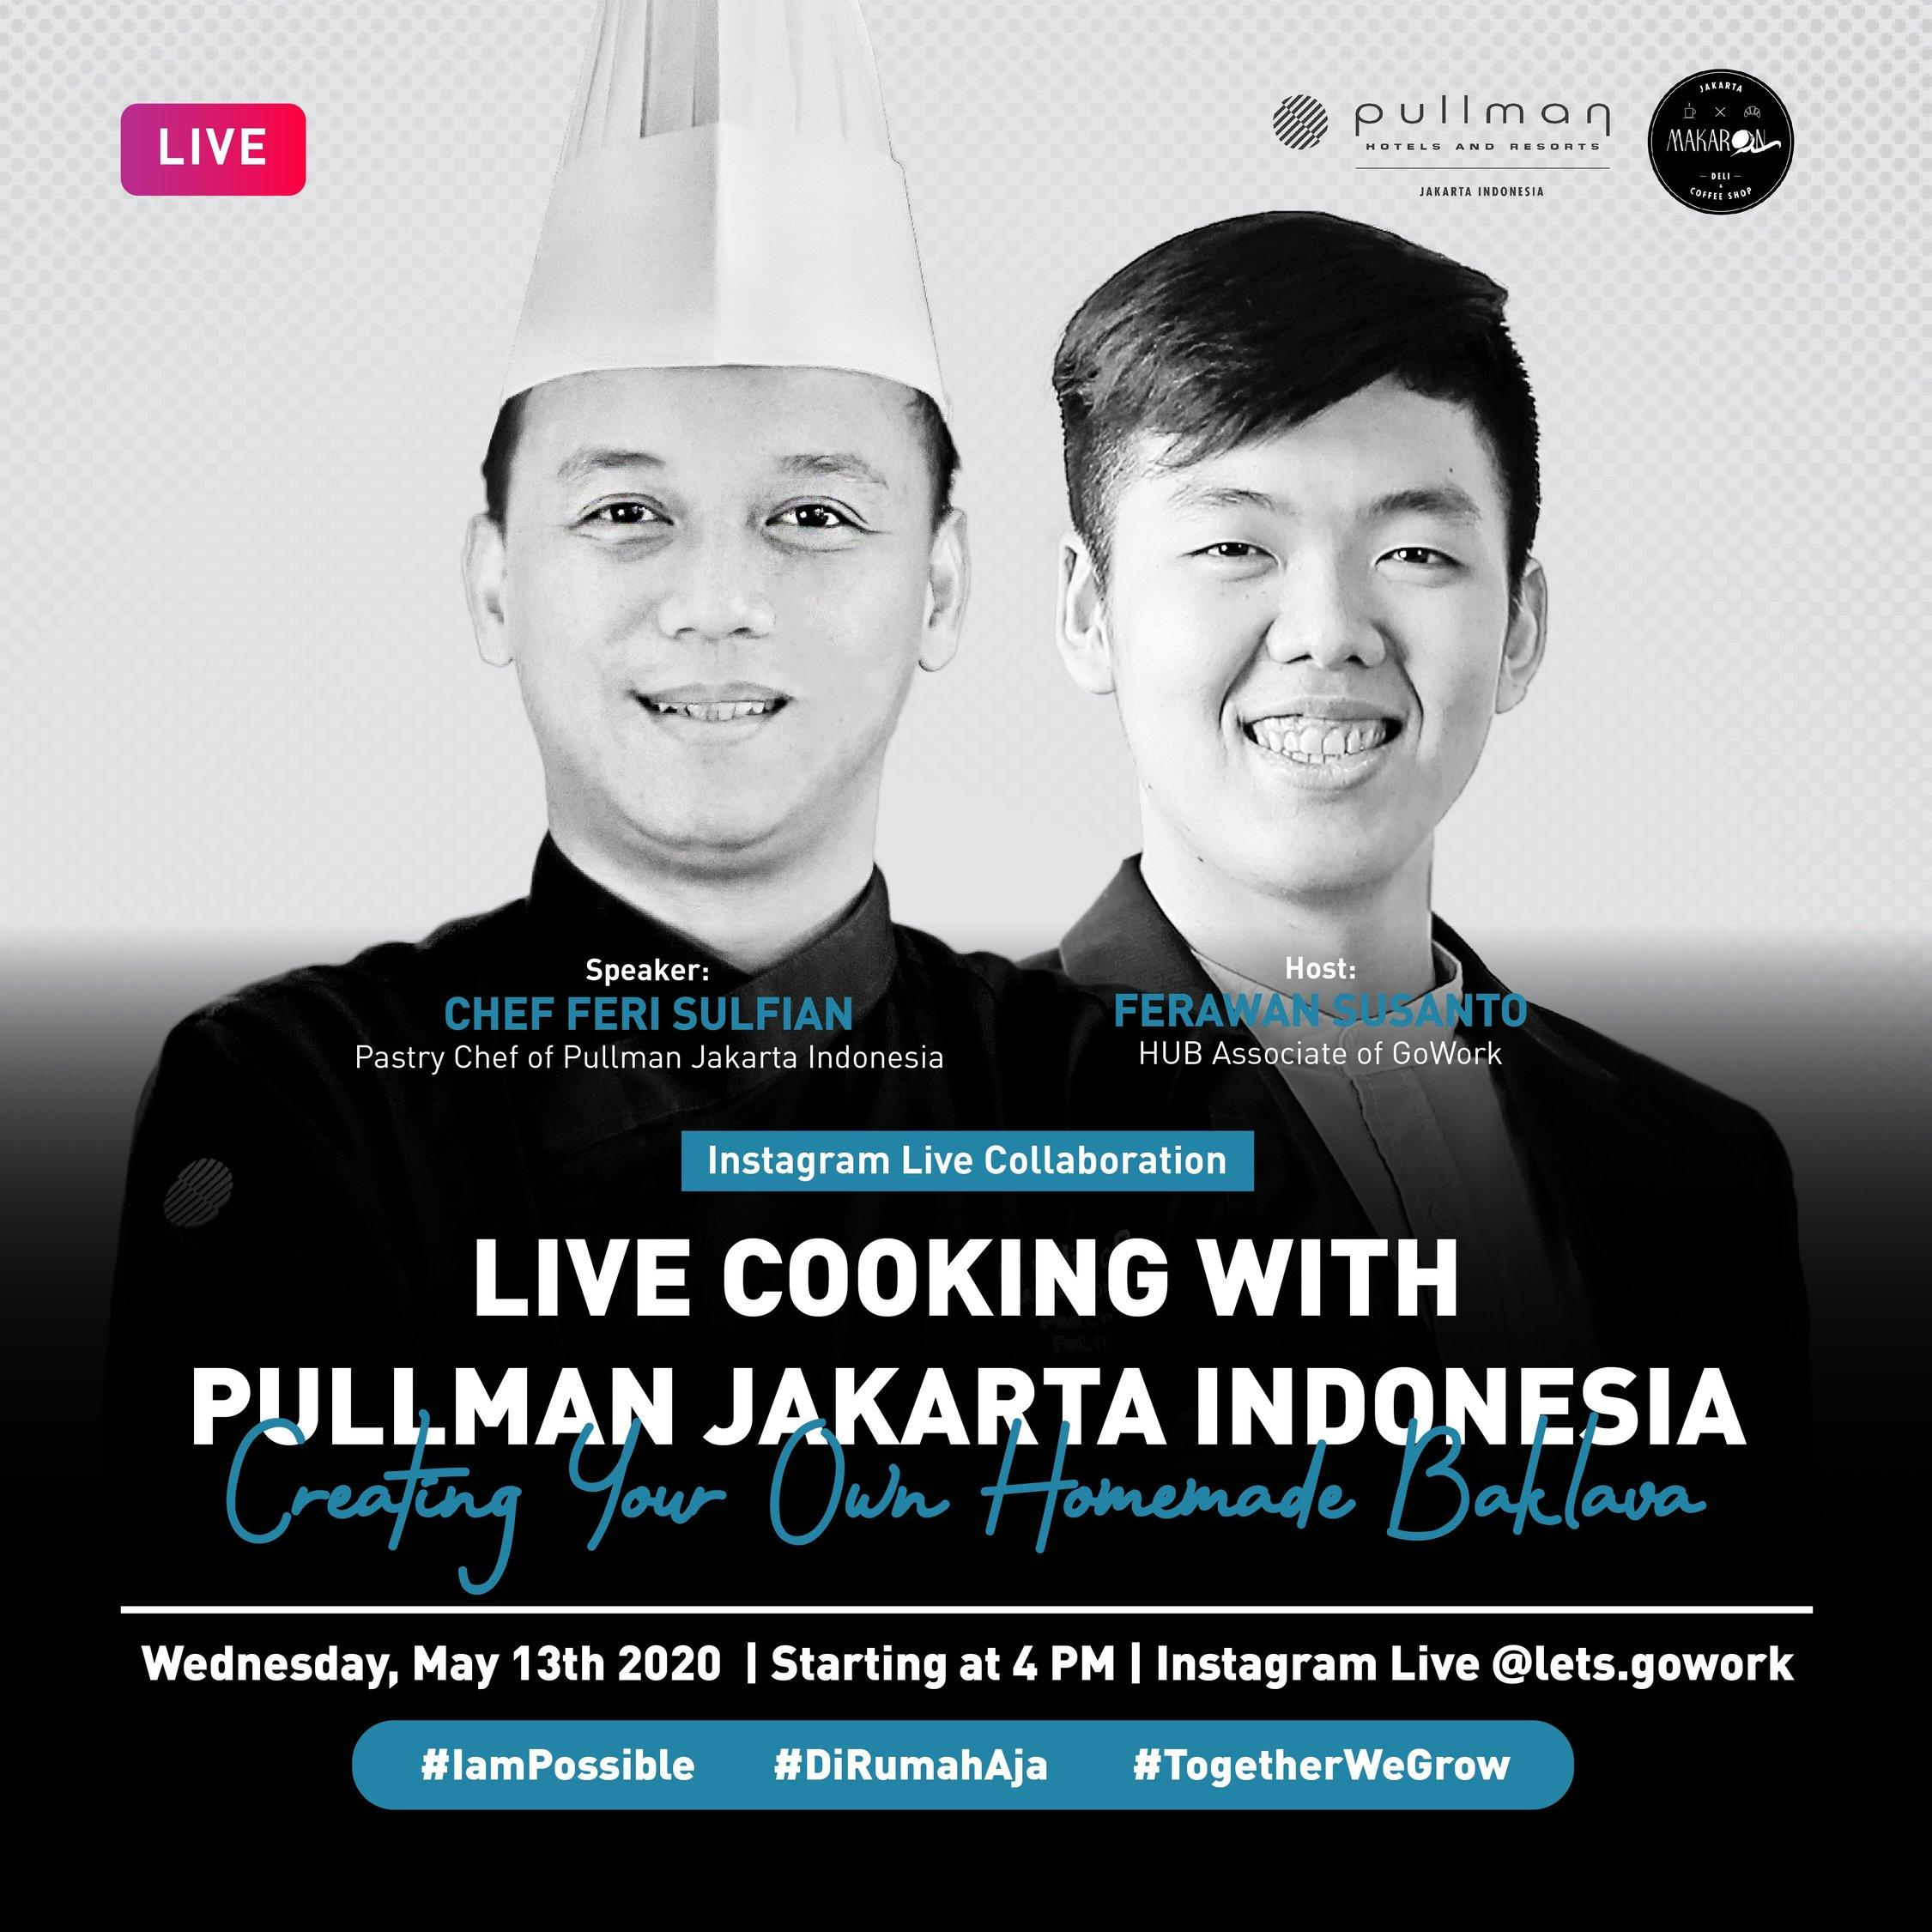 Creating Your Own Homemade Baklava with Pullman Jakarta Indonesia